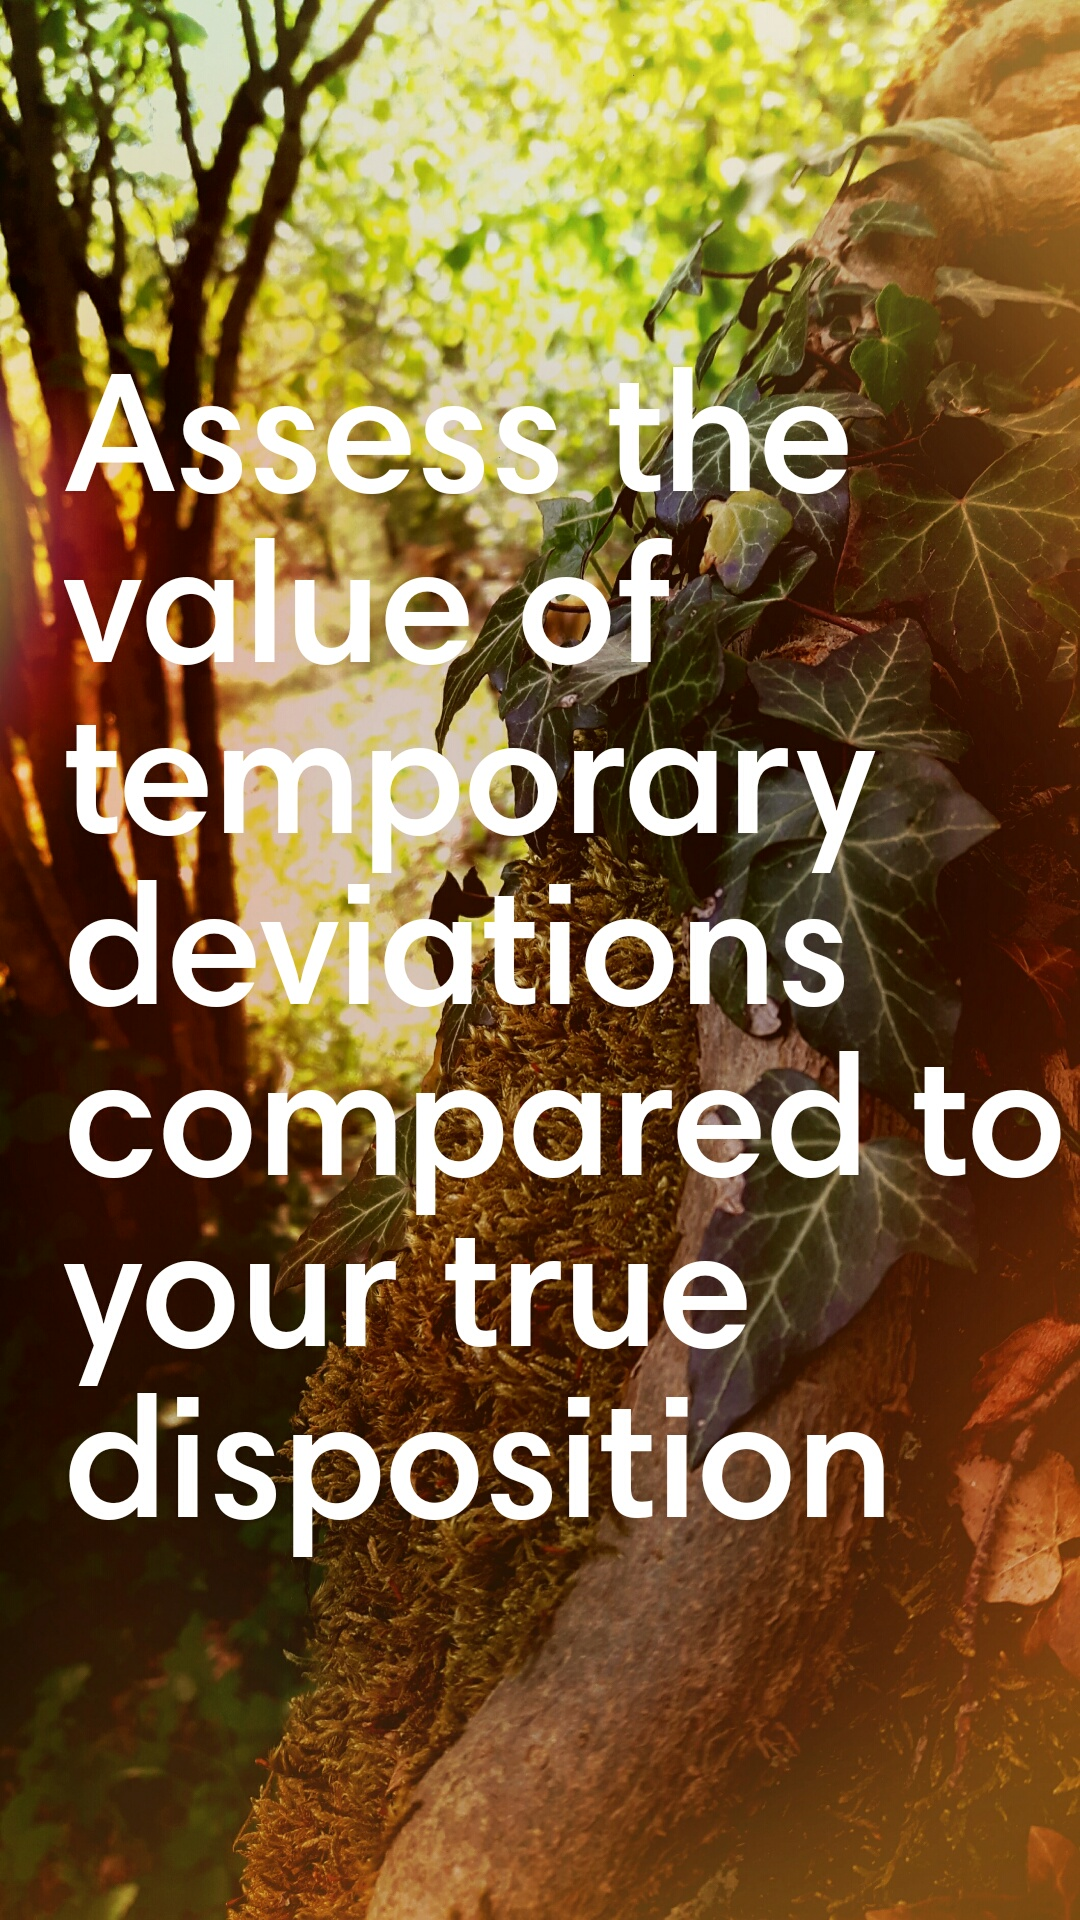 Assess the value of temporary deviations compared to your true disposition (1080×1920) [OC]